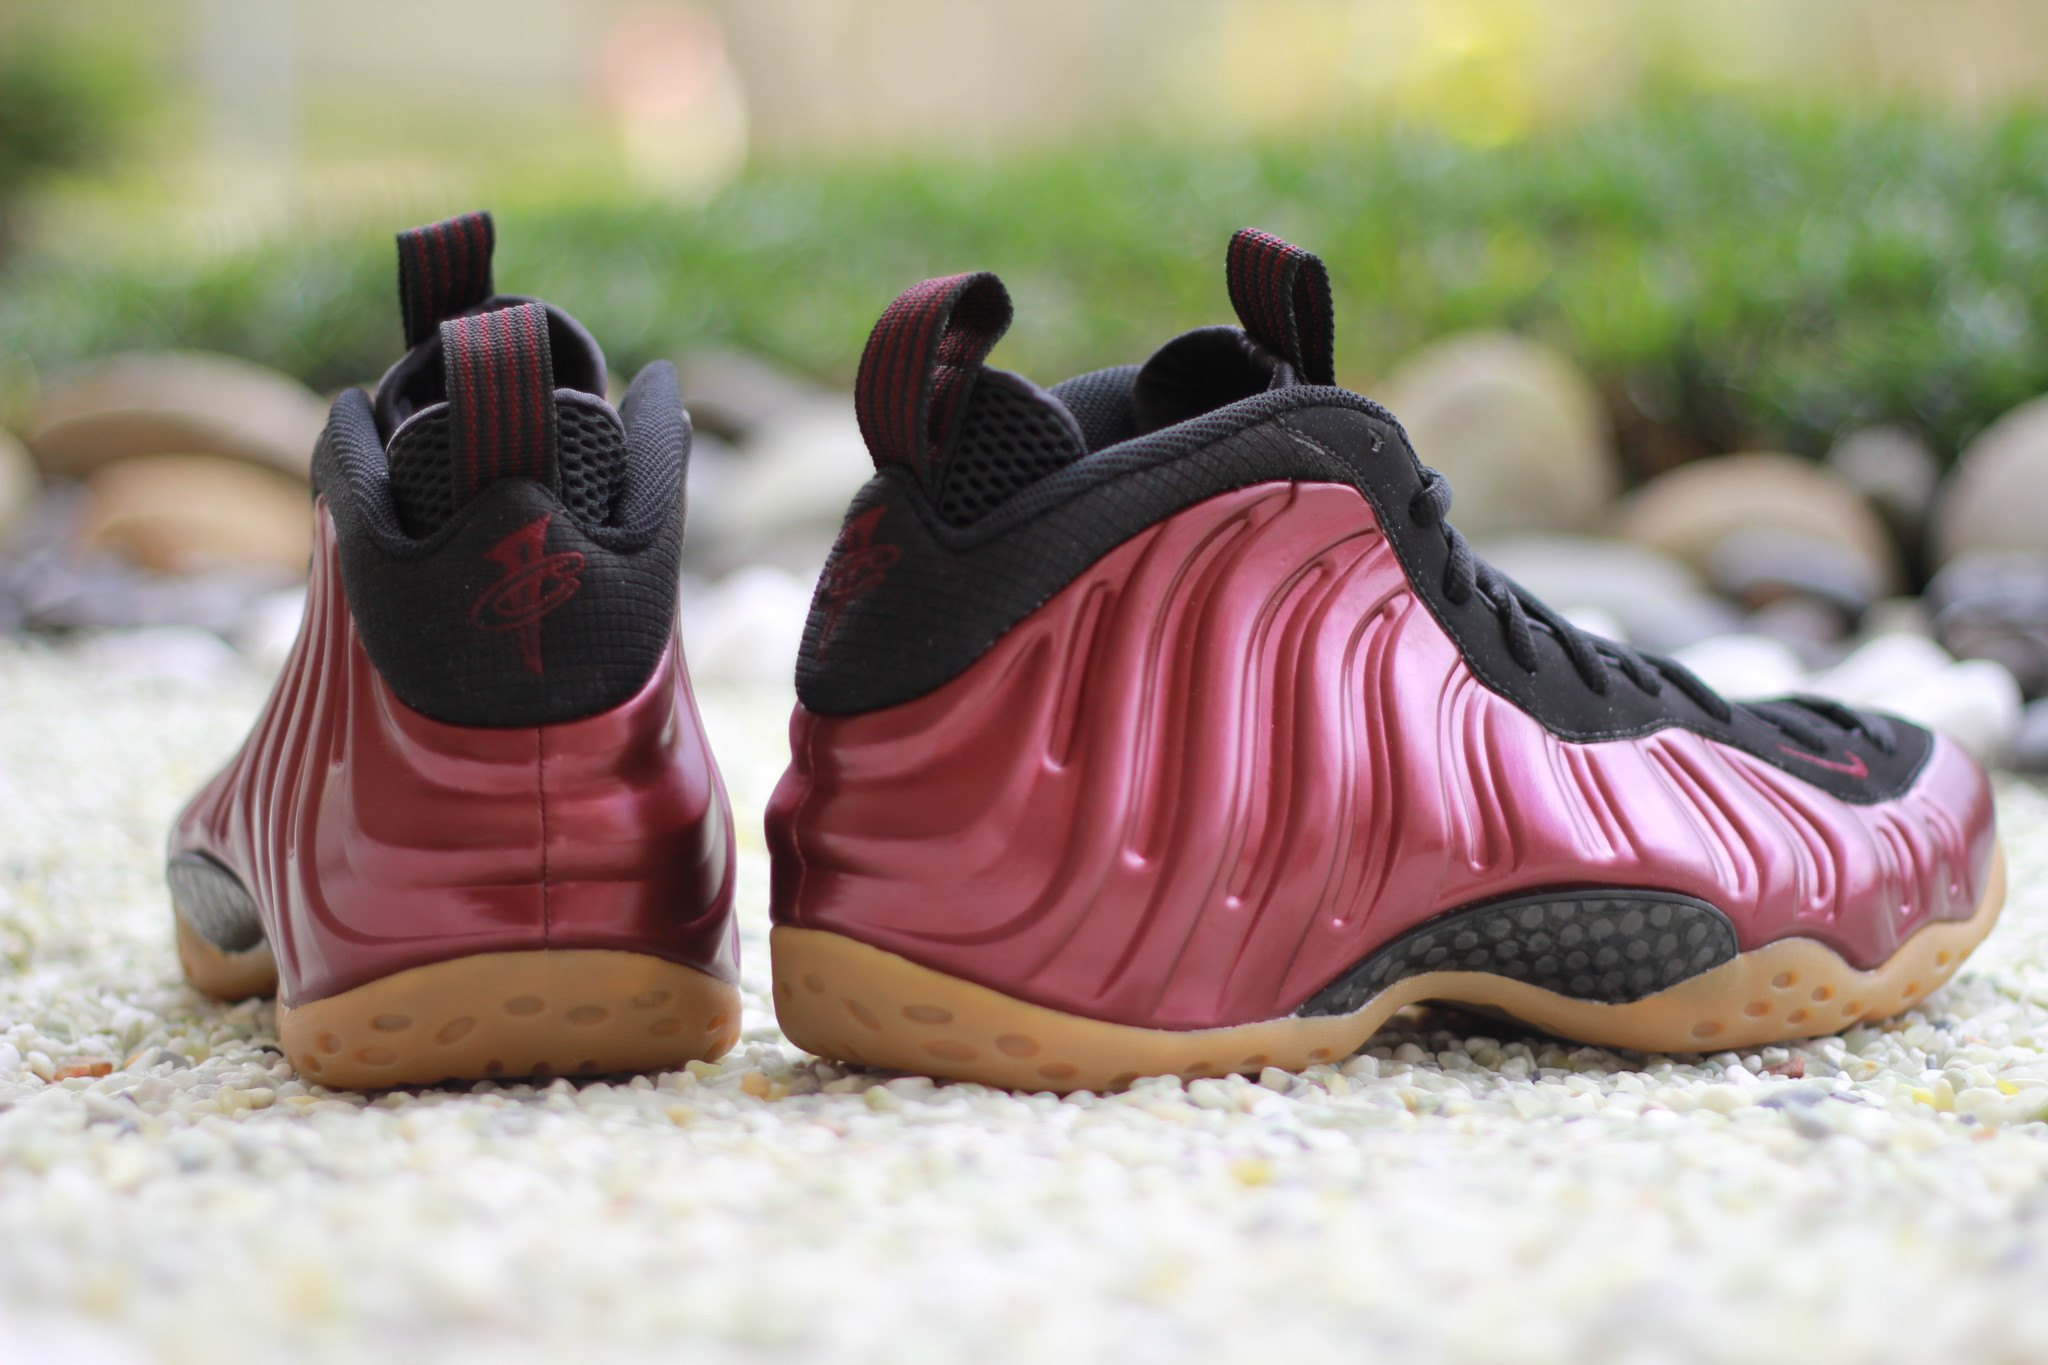 low priced 32df4 81364 Nike Foamposite Maroon Gum | Sole Collector